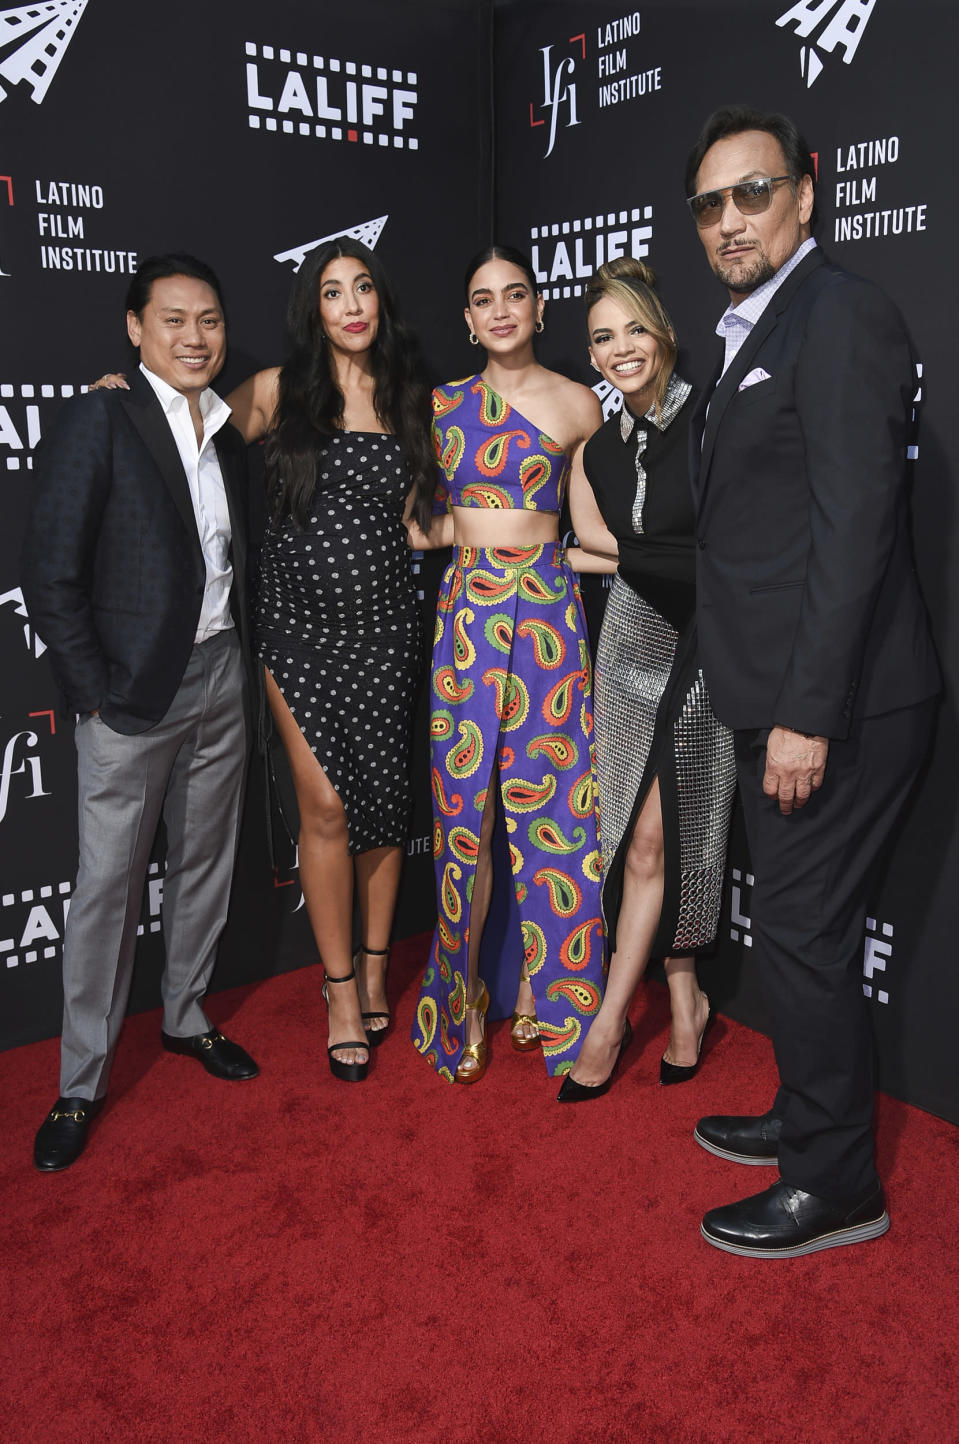 """Jon M. Chu, Stephanie Beatriz, Melissa Barrera, Leslie Grace and Jimmy Smits, form left, arrive at a screening of """"In the Heights"""" during the Los Angeles Latino International Film Festival at TCL Chinese Theatre on Friday, June 4, 2021, in Los Angeles. (Photo by Richard Shotwell/Invision/AP)"""